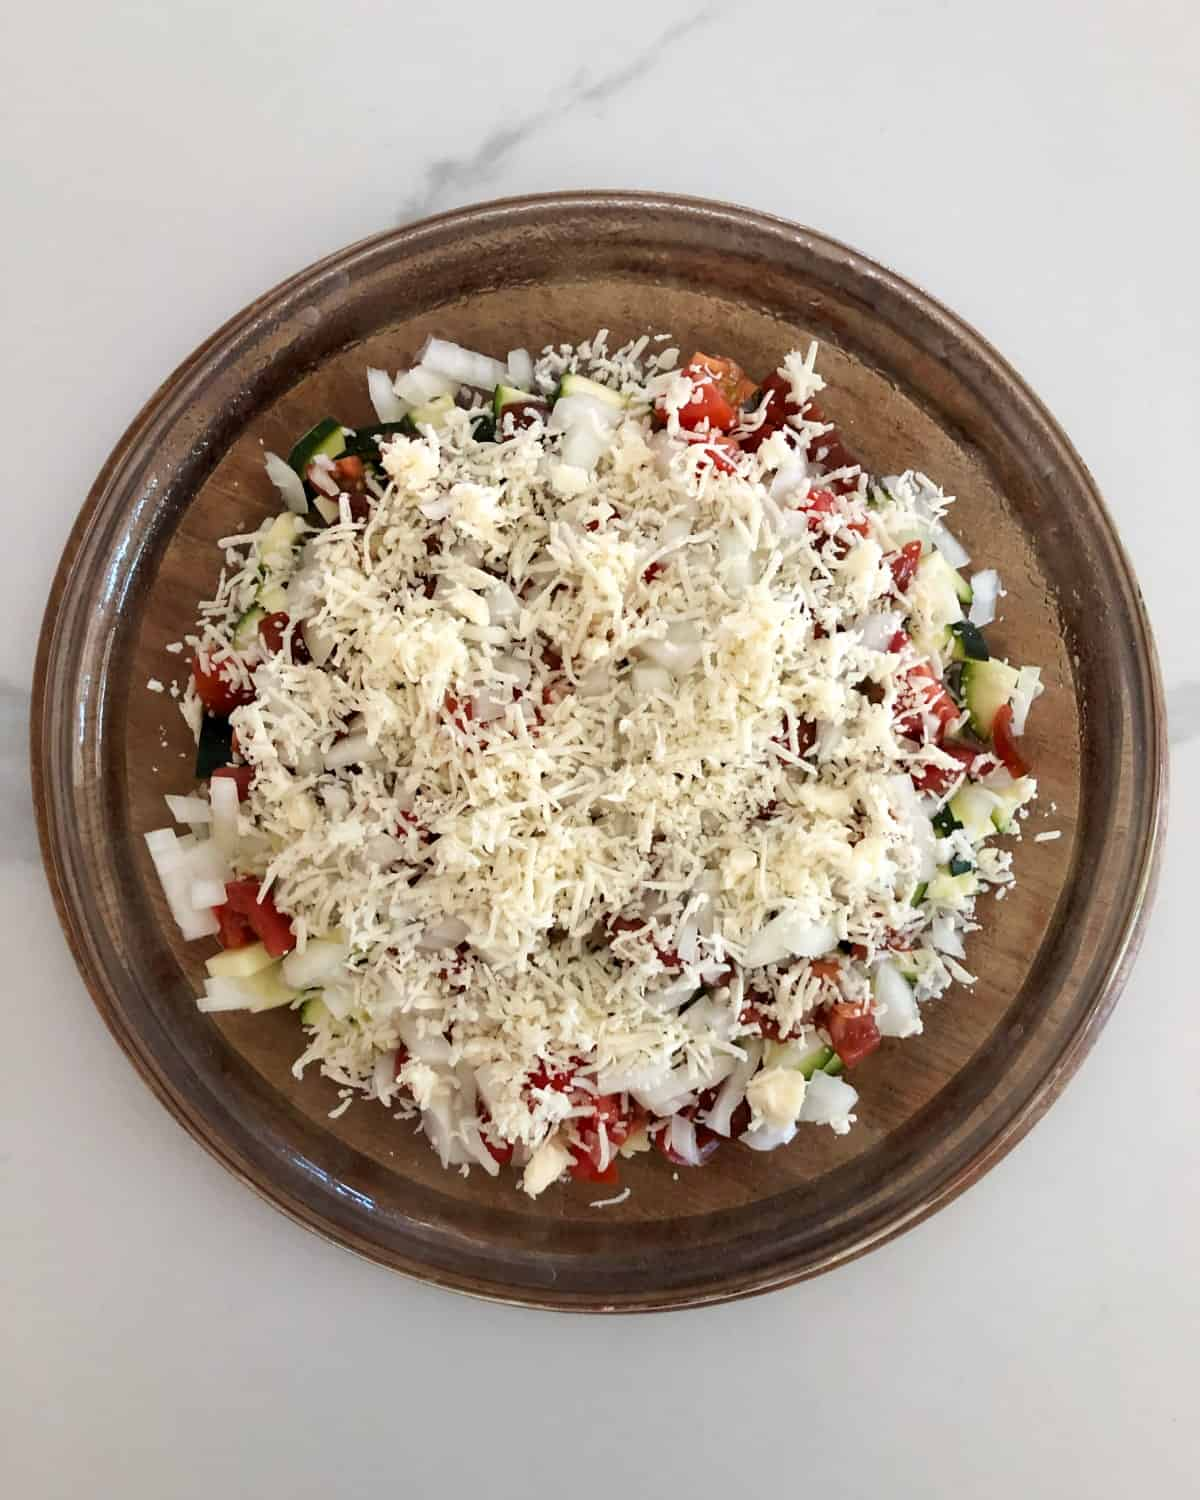 Glass pie dish layered with chopped zucchini, tomato, onion and grated cheese.